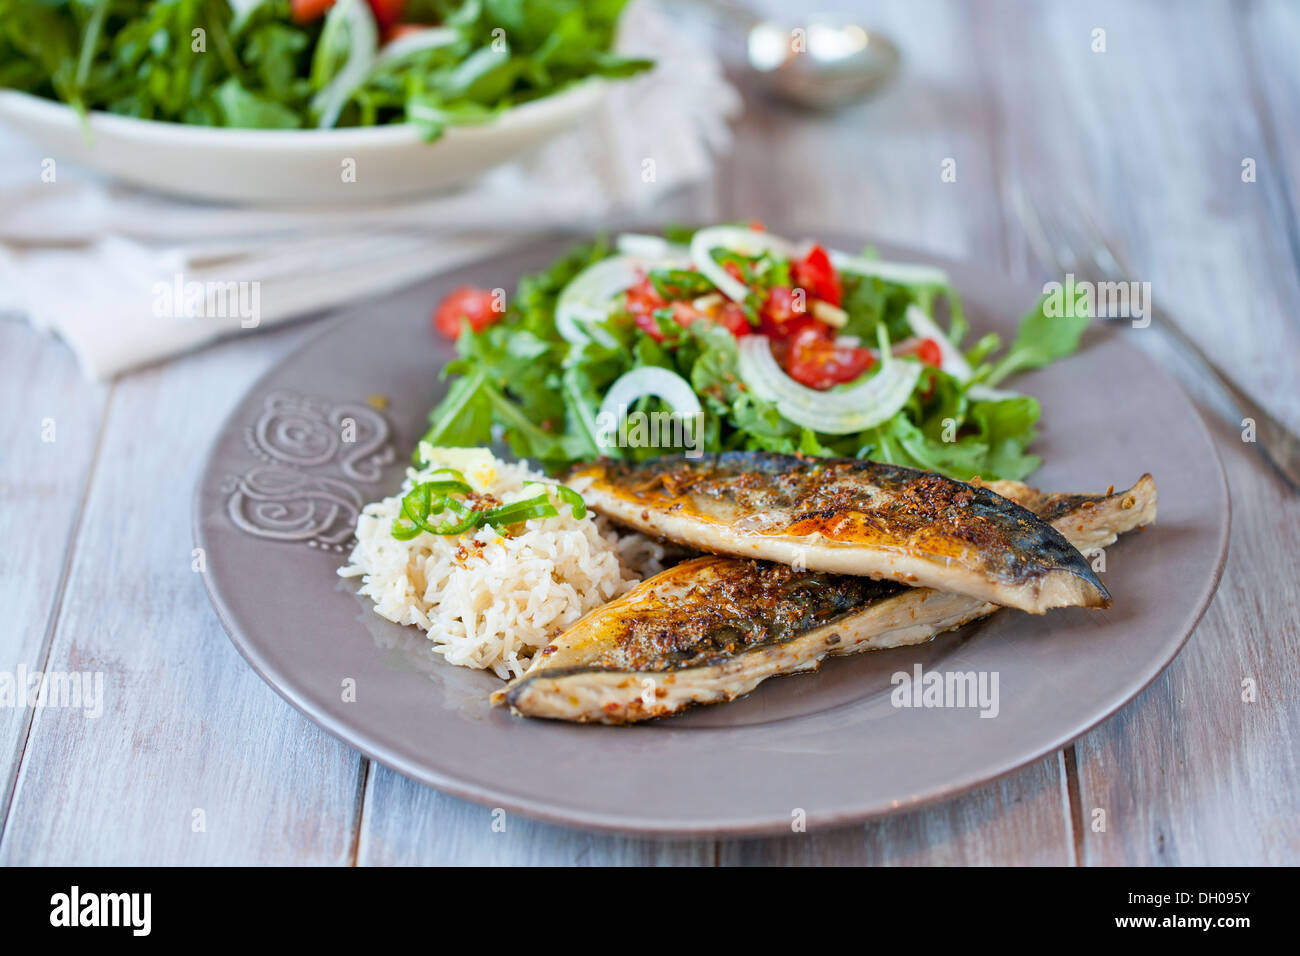 Spicy mackerel fillets - Stock Image